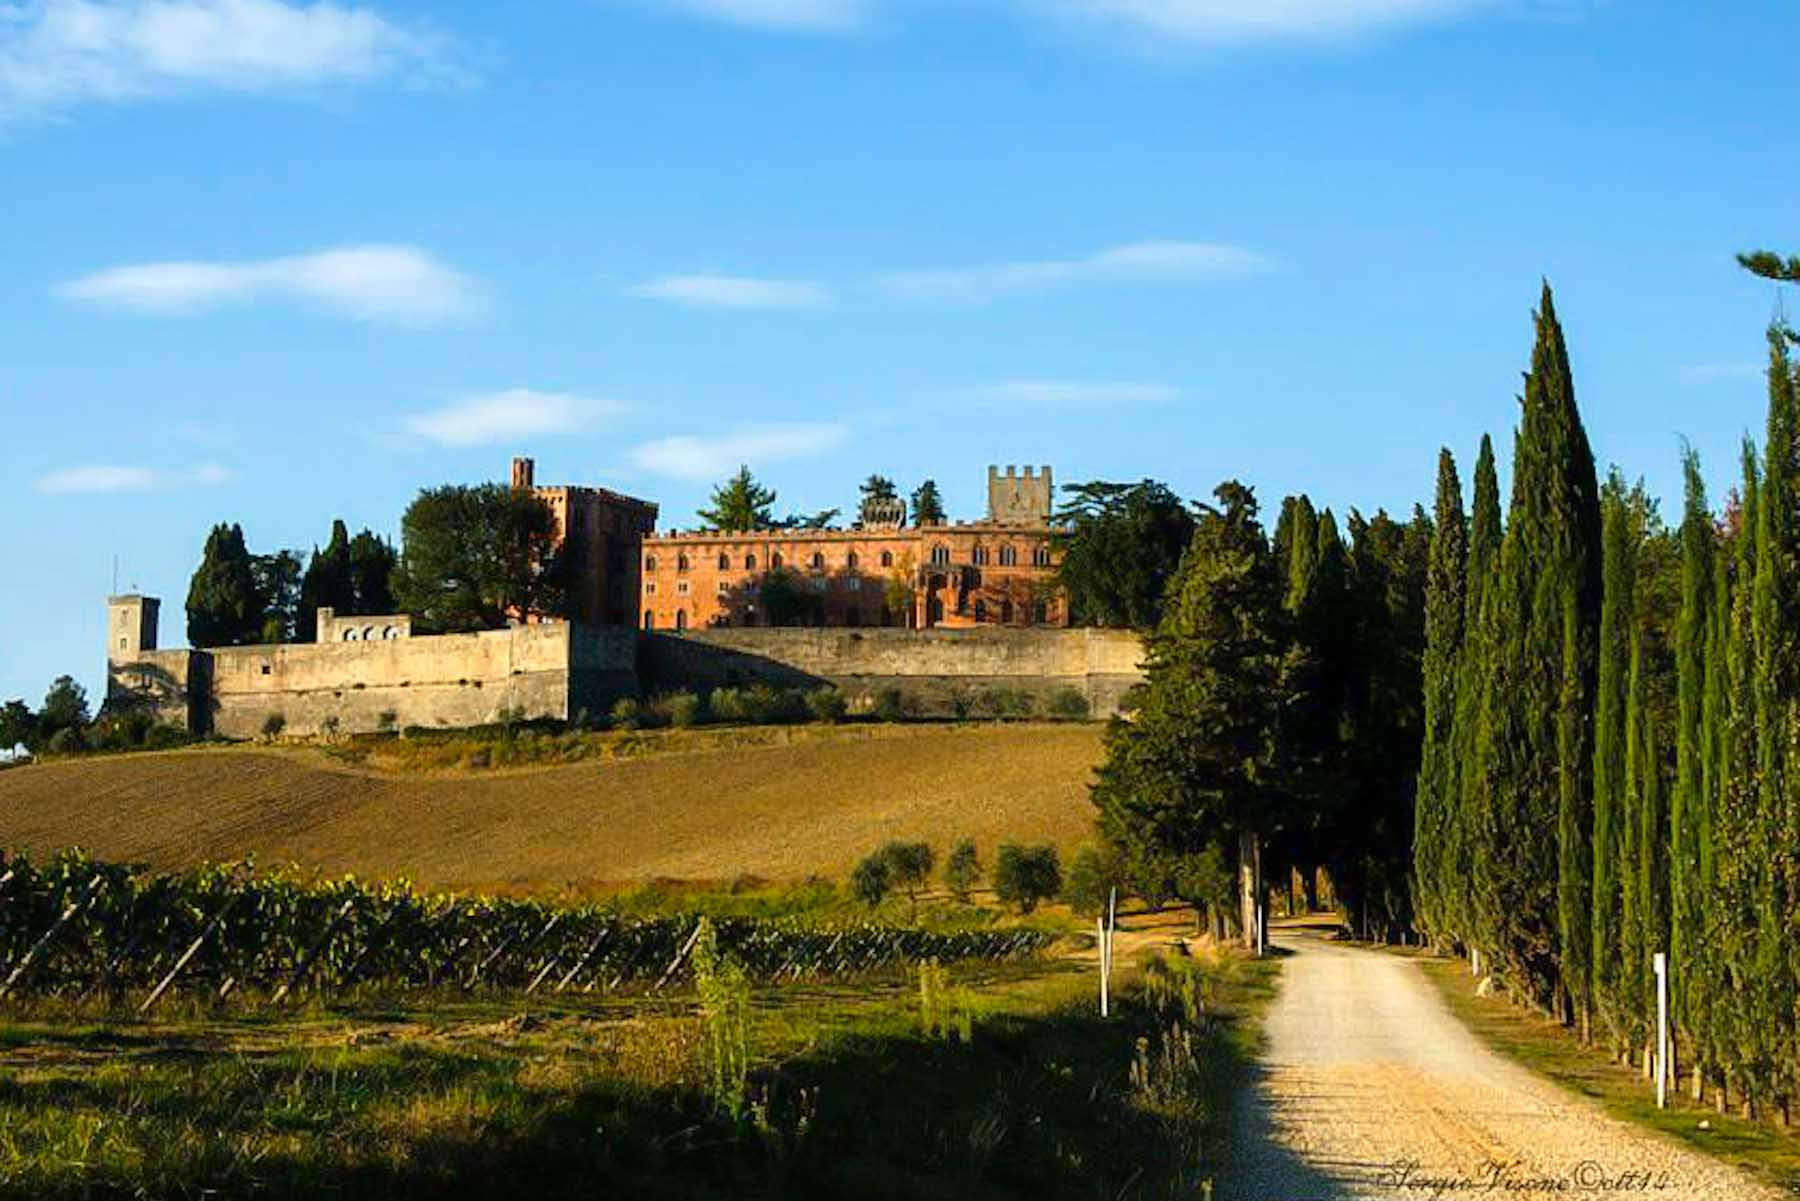 Brolio Castle - Chianti Wine Road - Best places to visit in Tuscany